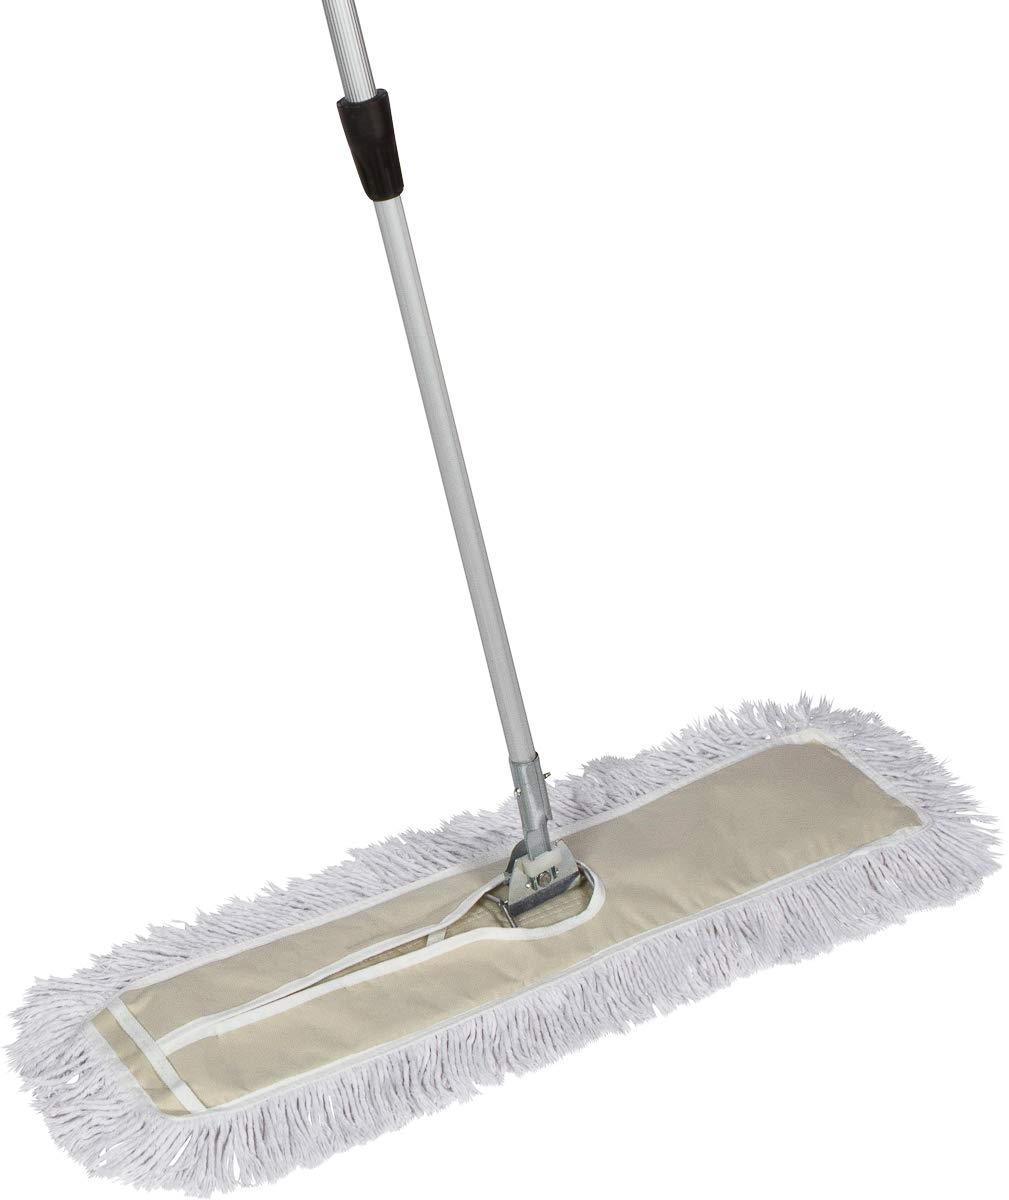 Tidy Tools 30 Inch Industrial Strength Cotton Dust Mop with Extendable Metal Telescopic Handle and Frame. 30'' X 5'' Wide Mop Head with Cut Ends